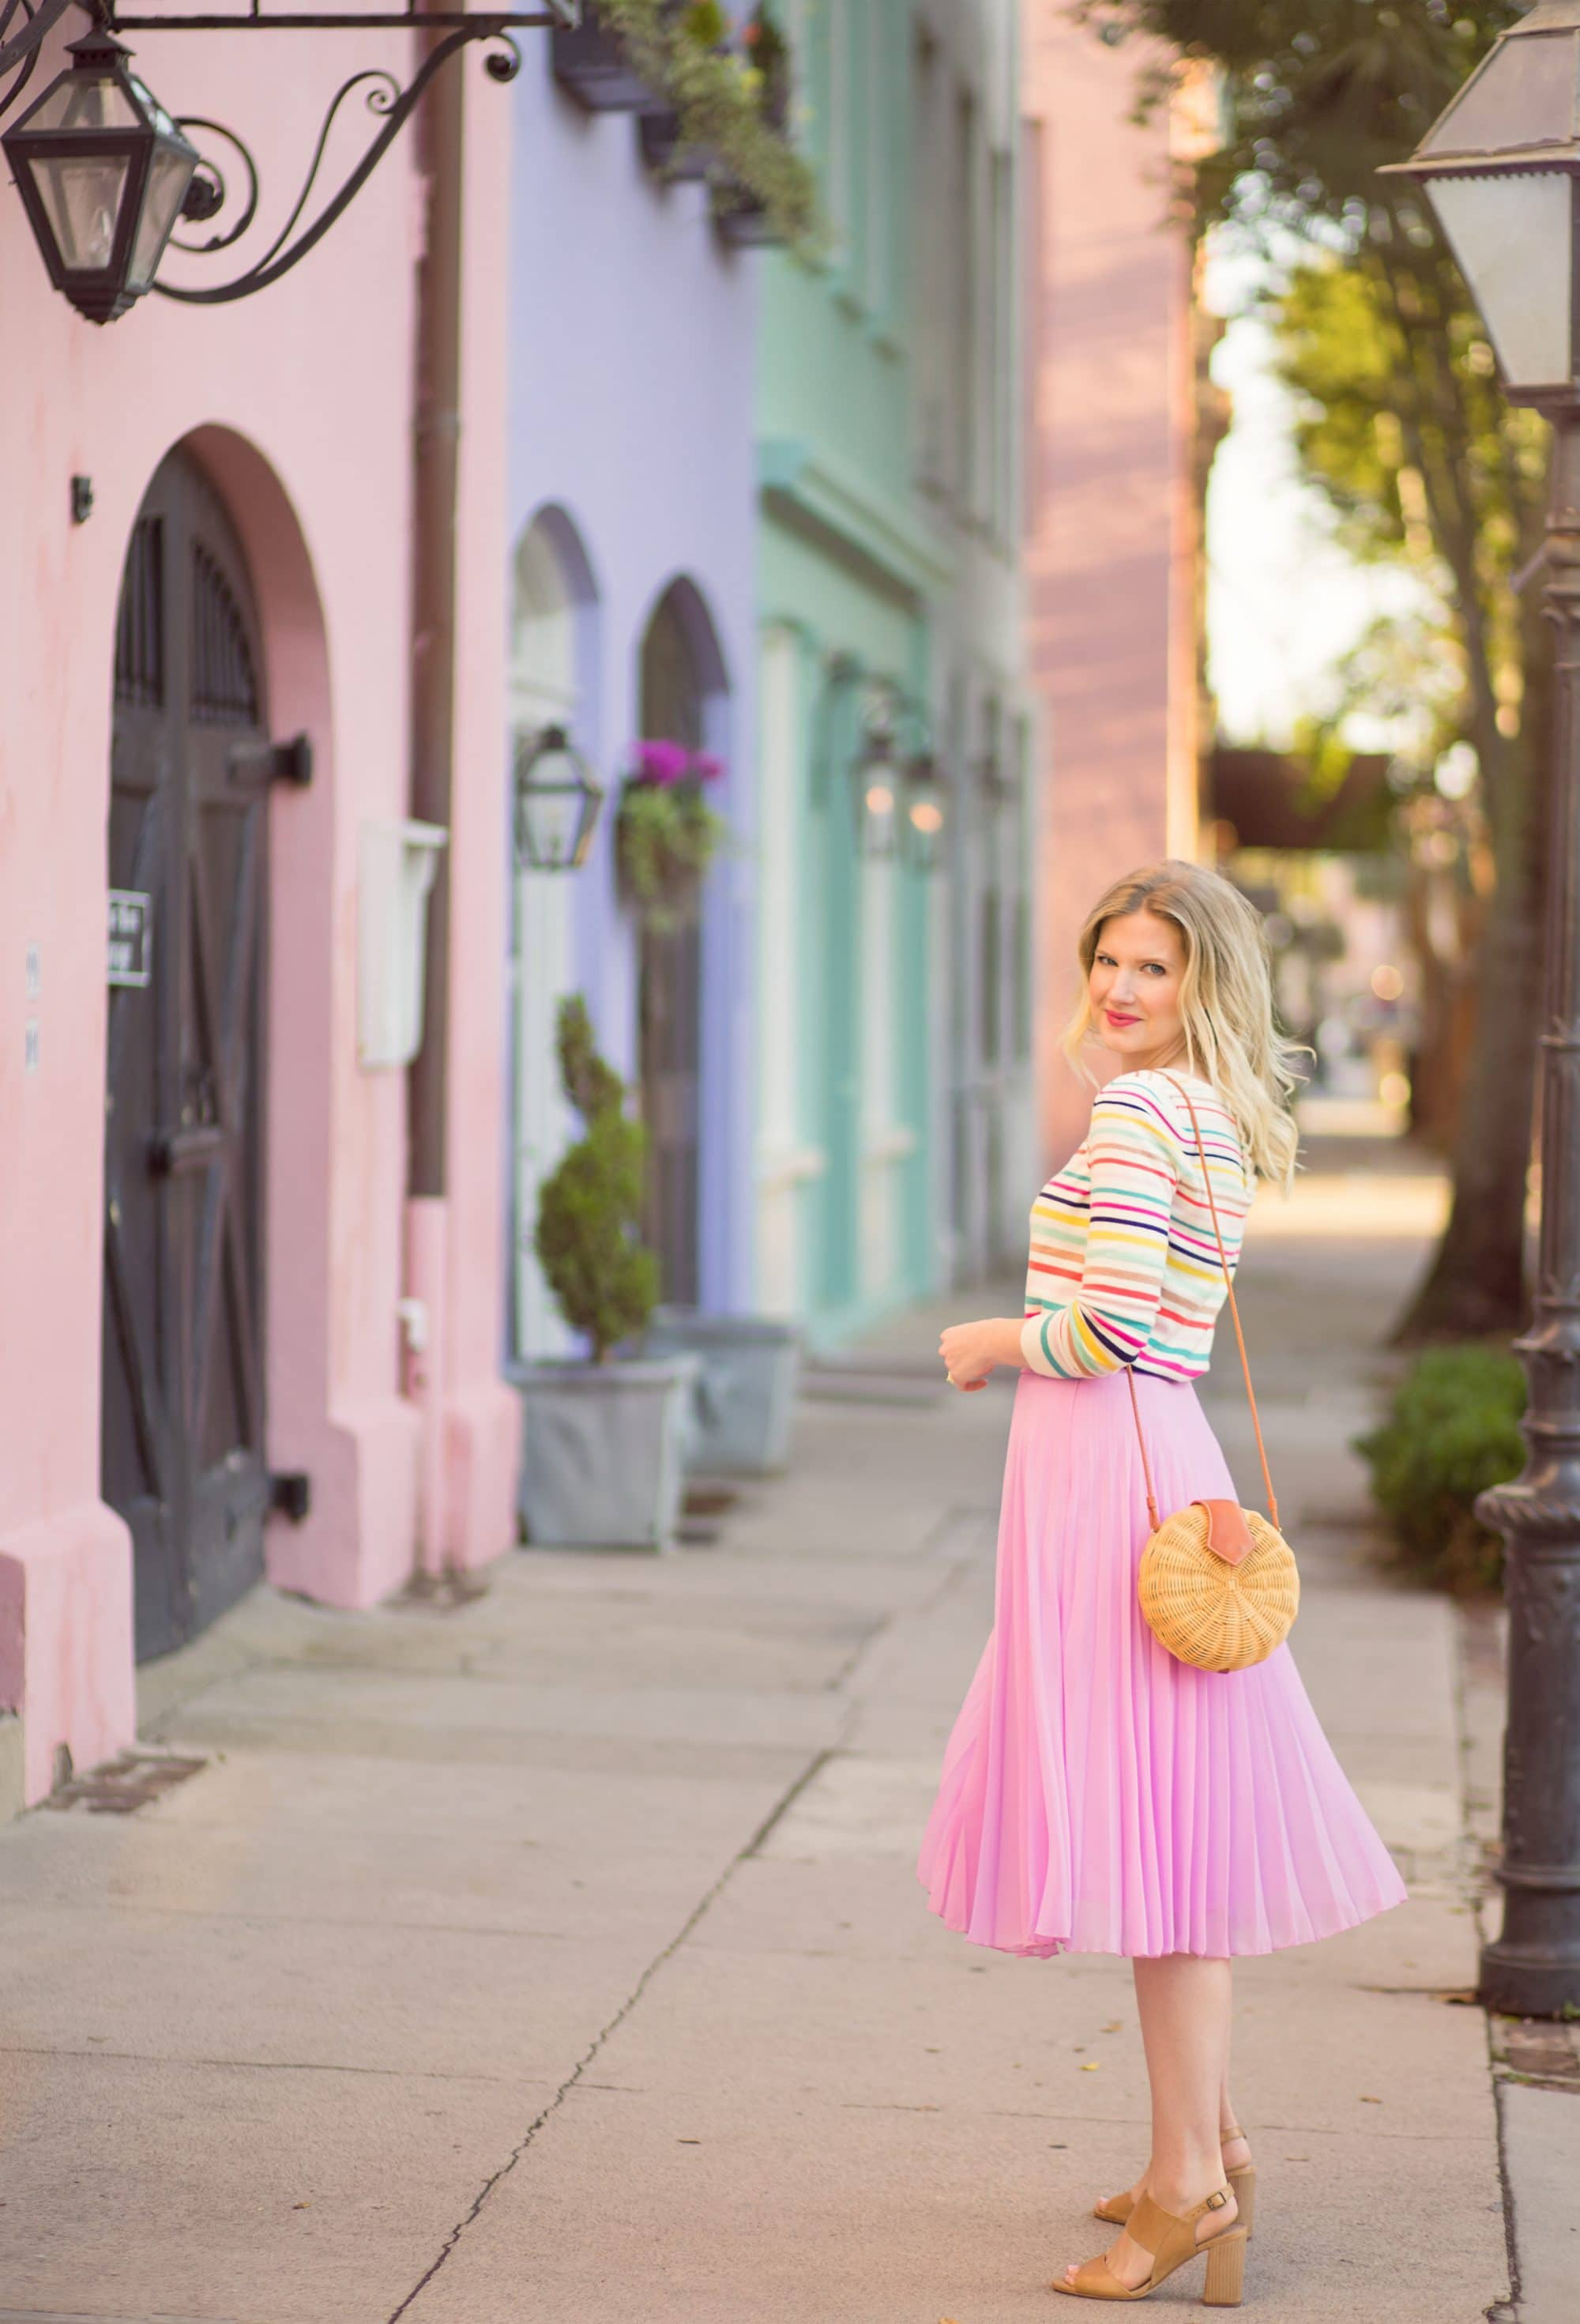 Dressing Like a Rainbow on Rainbow Row | www.ashleybrookedesigns.com